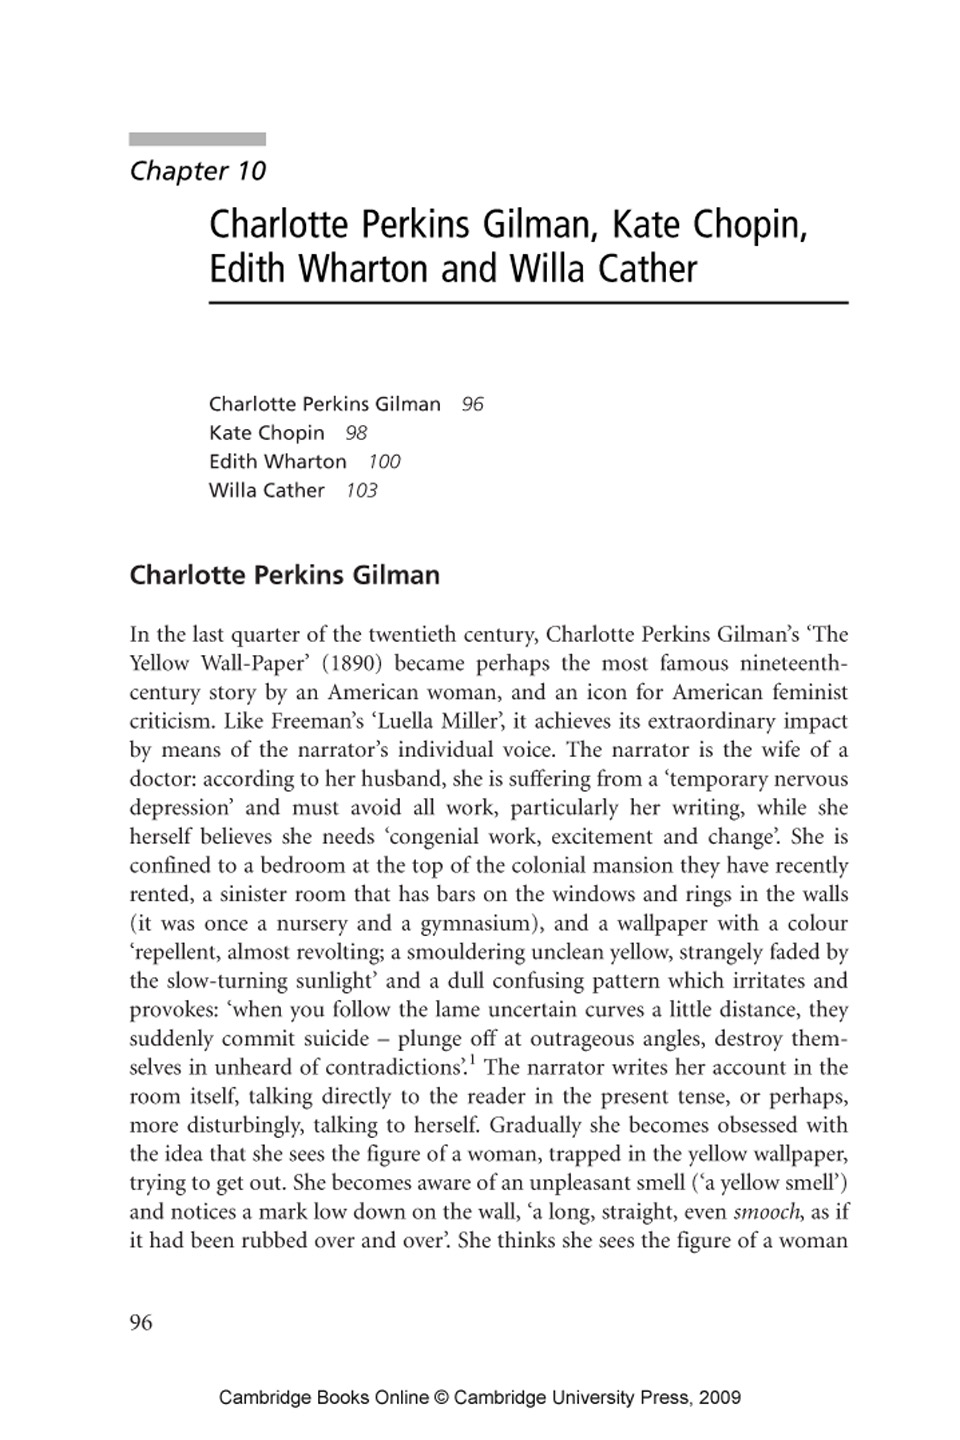 an analysis of the confusing the yellow wallpaper novel by charlotte perkins gilman Rhetorical analysis and general academic vocabulary  in the yellow wallpaper by charlotte perkins gilman,  in the novel brave new world,.